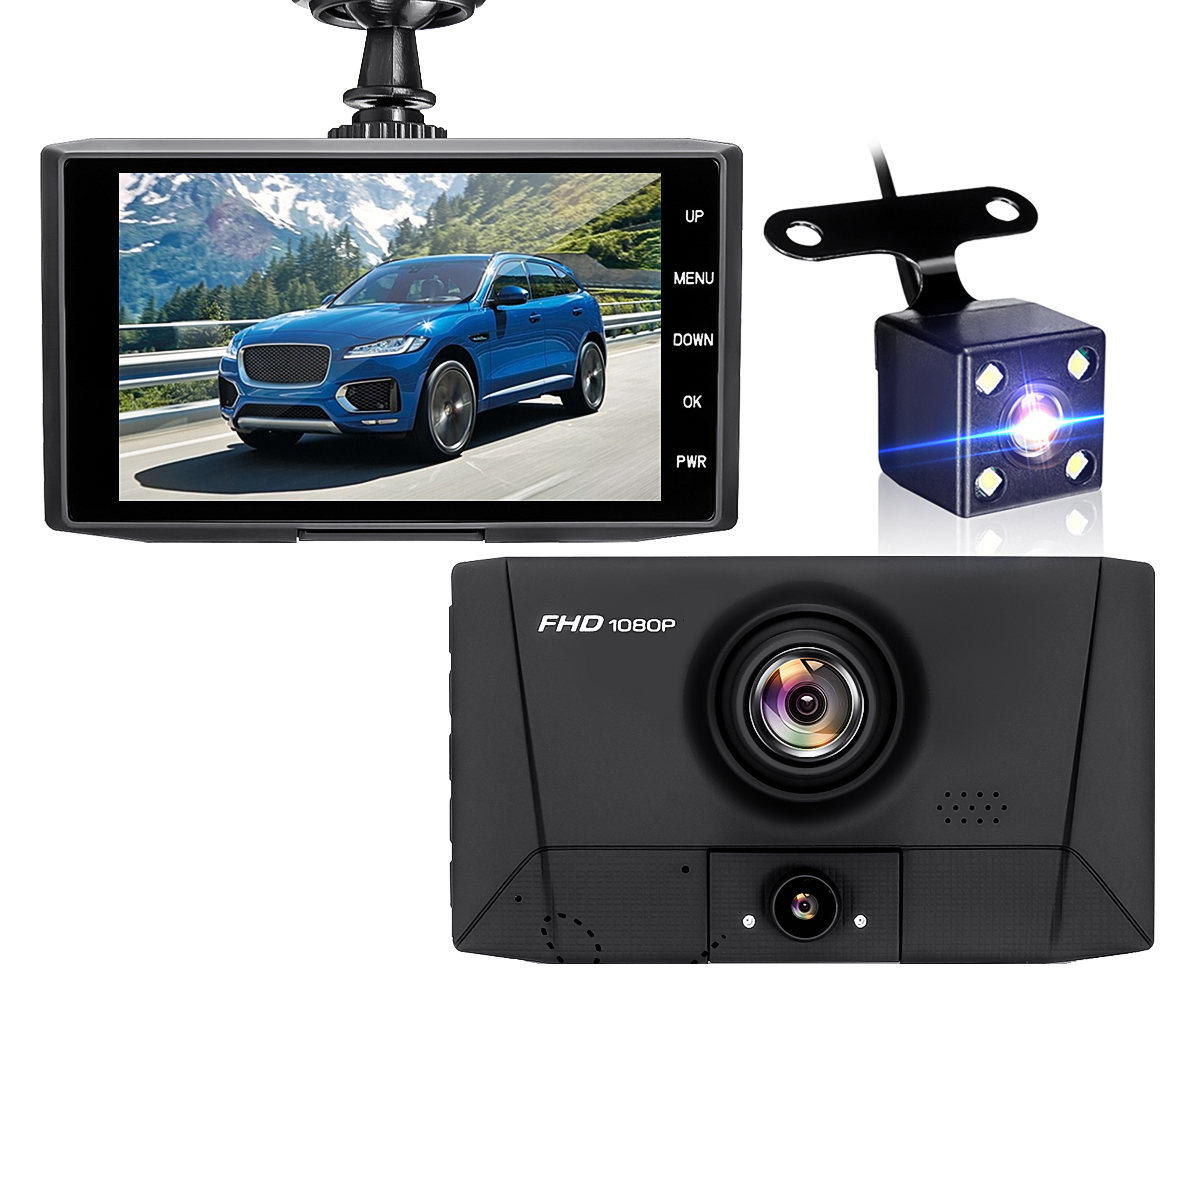 1080P 3 Lens Auto Loop Recording Parking Monitori